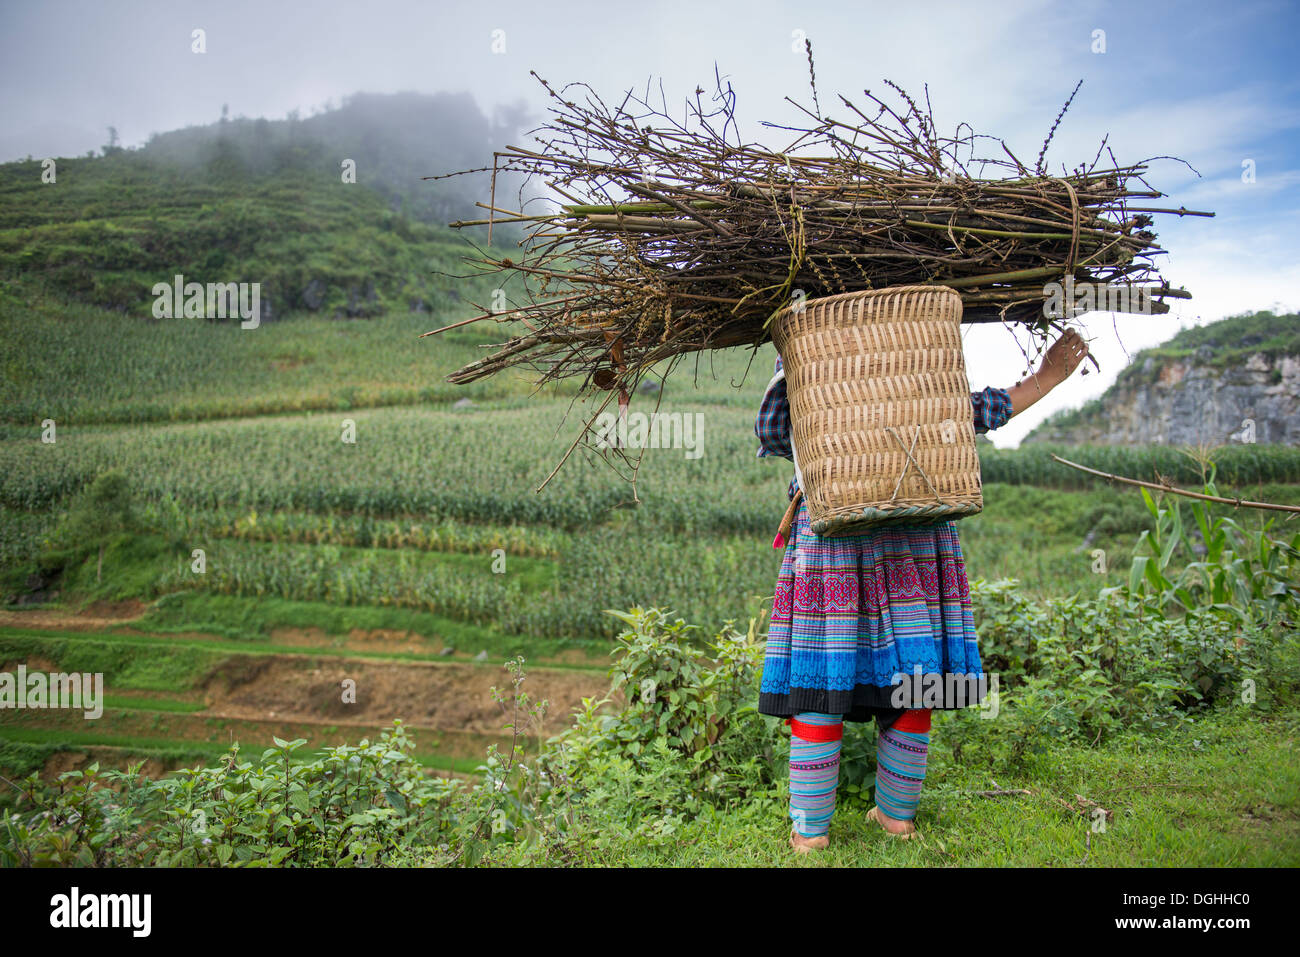 Flower Hmong woman carry the firewood on the back, Bac Ha, Lao Cai, Vietnam - Stock Image